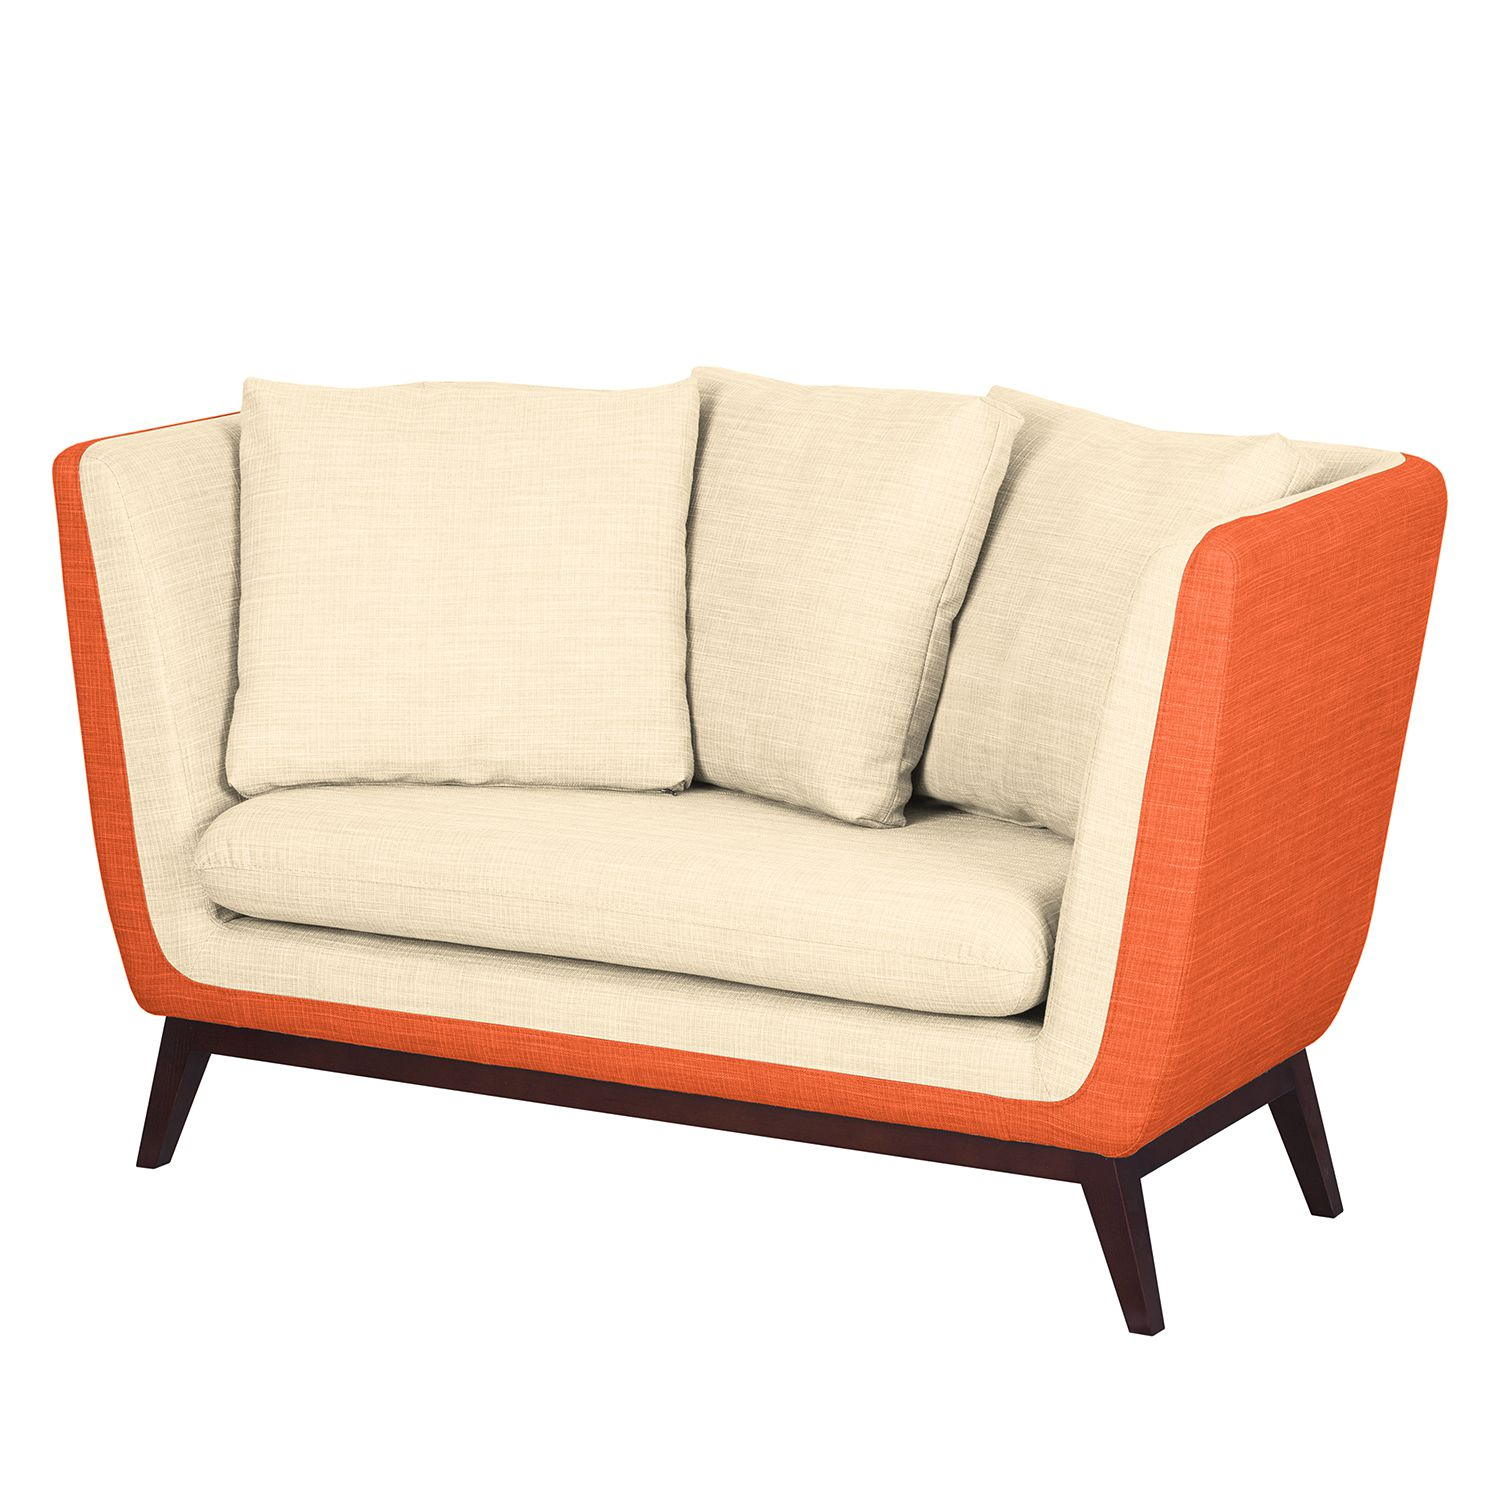 Sofa Sagone (2-Sitzer) - Webstoff - Orange / Cremeweiß, Morteens